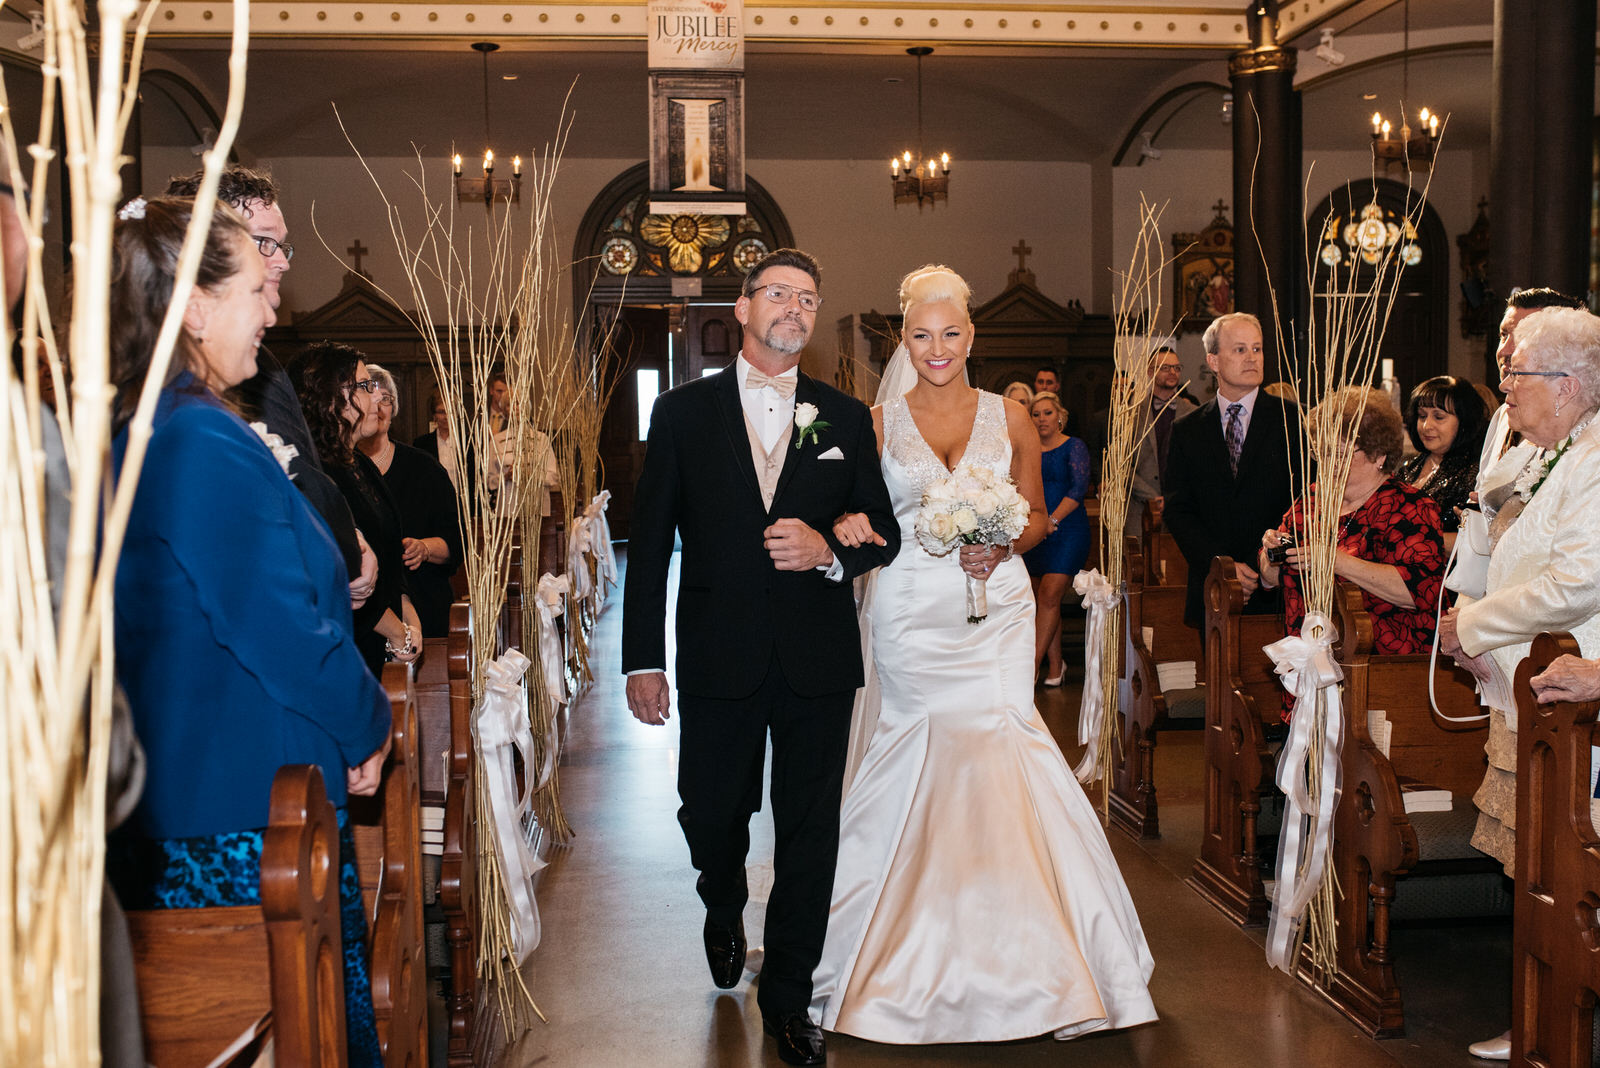 hilton_garden_inn_southpointe_pittsburgh_weddings_37.jpg